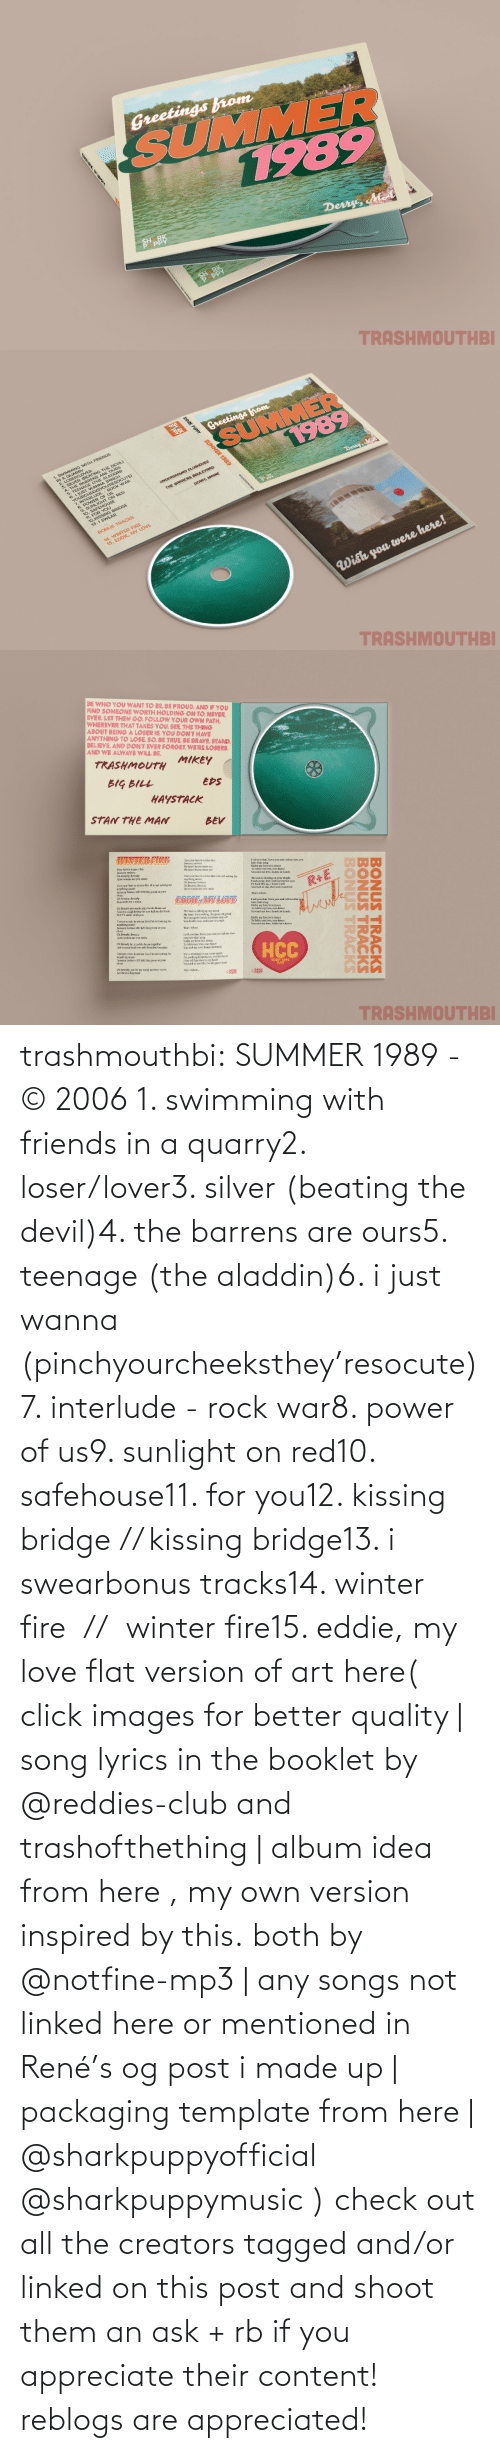 beating: trashmouthbi: SUMMER 1989 - © 2006 1. swimming with friends in a quarry2. loser/lover3. silver (beating the devil)4. the barrens are ours5. teenage (the aladdin)6. i just wanna (pinchyourcheeksthey'resocute)7. interlude - rock war8. power of us9. sunlight on red10. safehouse11. for you12. kissing bridge // kissing bridge13. i swearbonus tracks14. winter fire  //  winter fire15. eddie, my love flat version of art here( click images for better quality | song lyrics in the booklet by @reddies-club​ and trashofthething | album idea from here , my own version inspired by this. both by @notfine-mp3​ | any songs not linked here or mentioned in René's og post i made up | packaging template from here | @sharkpuppyofficial​ @sharkpuppymusic​ ) check out all the creators tagged and/or linked on this post and shoot them an ask + rb if you appreciate their content! reblogs are appreciated!